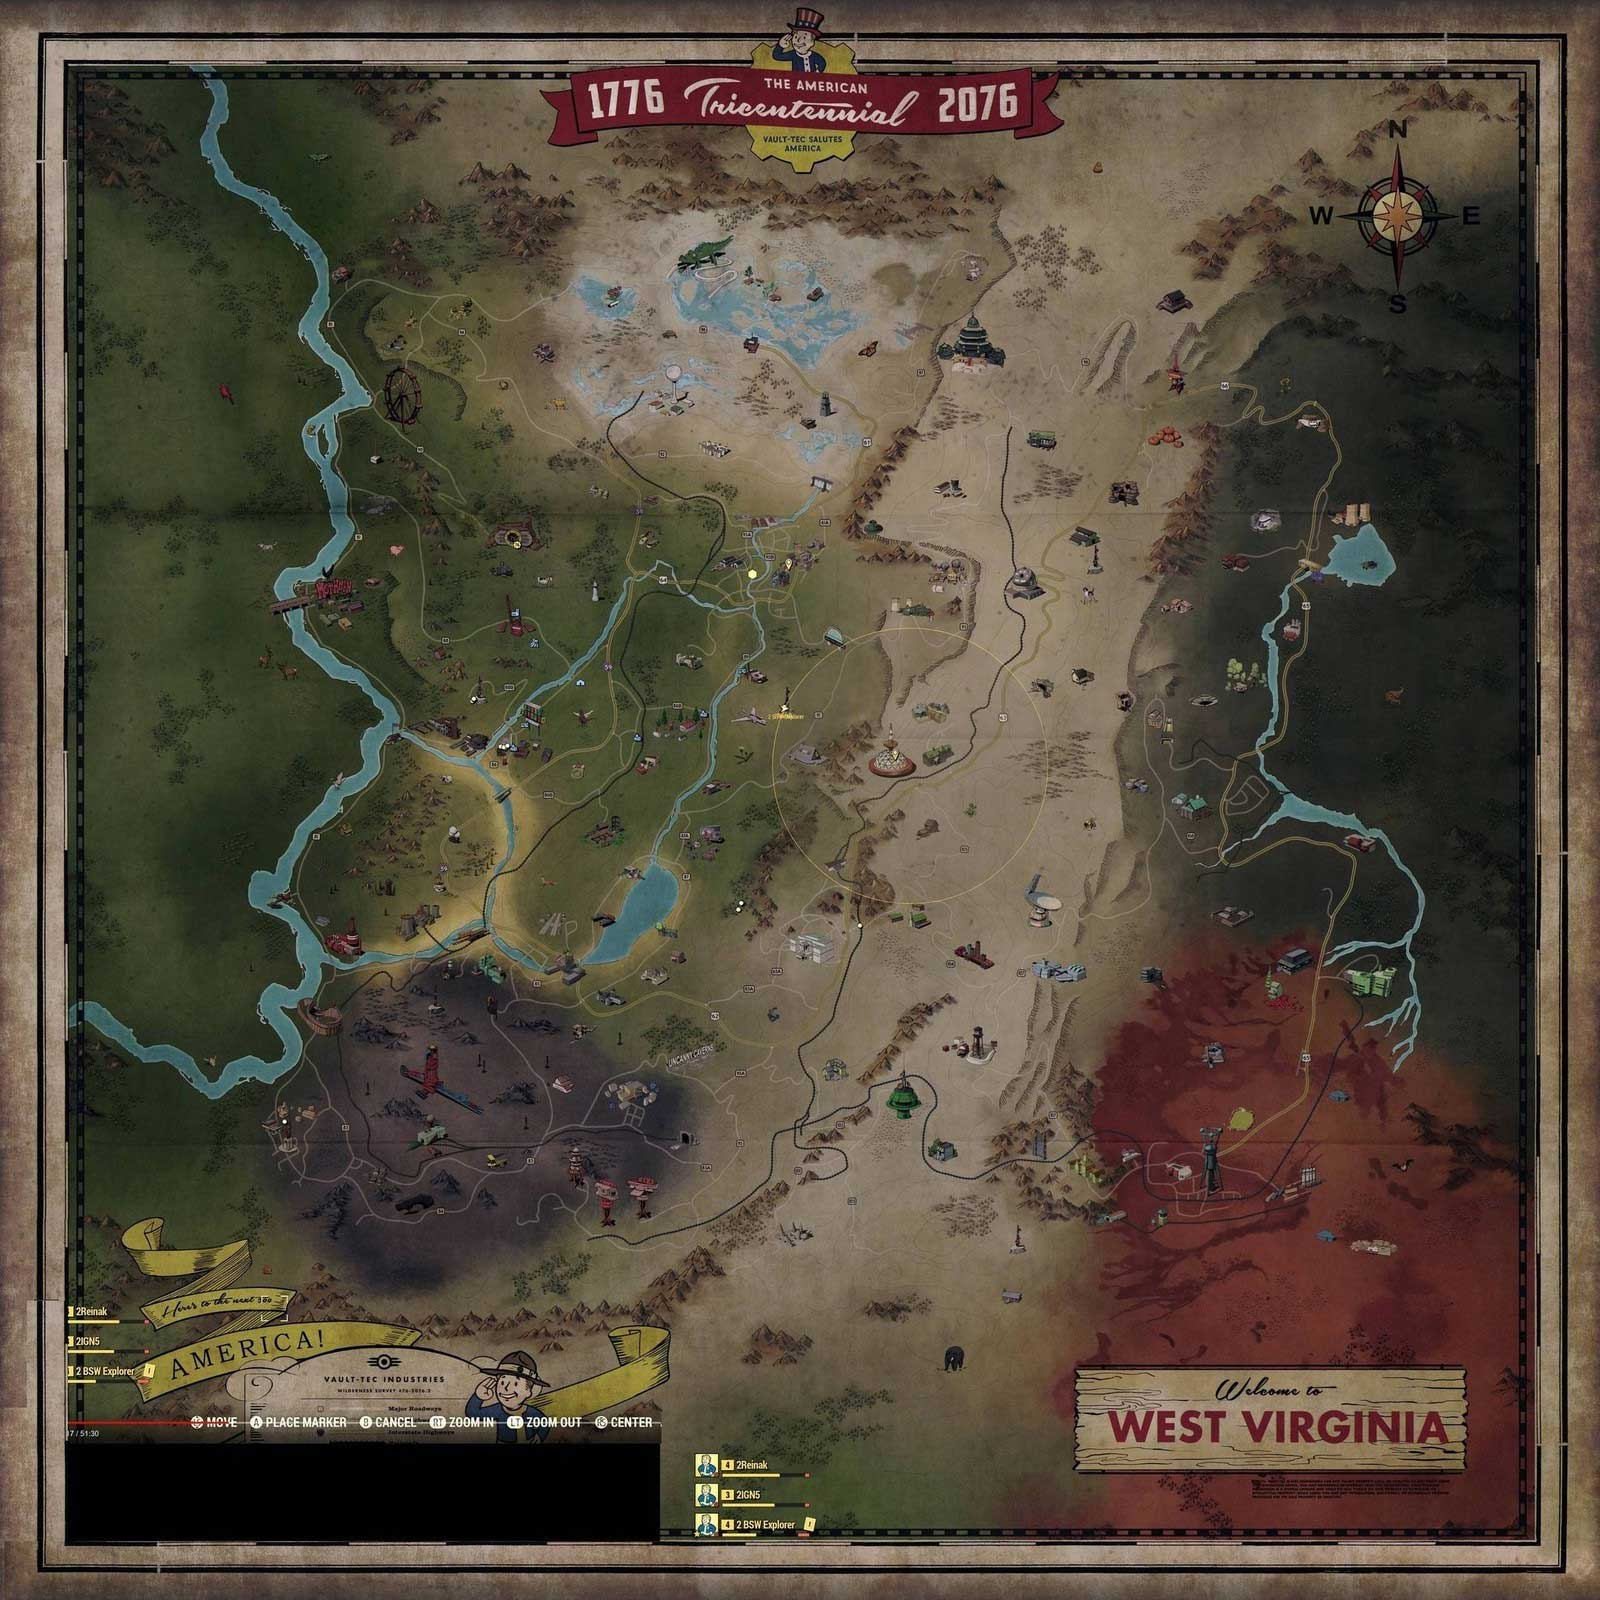 Fallout 76\'s Huge Map Details the Massive Game World - Legit Reviews